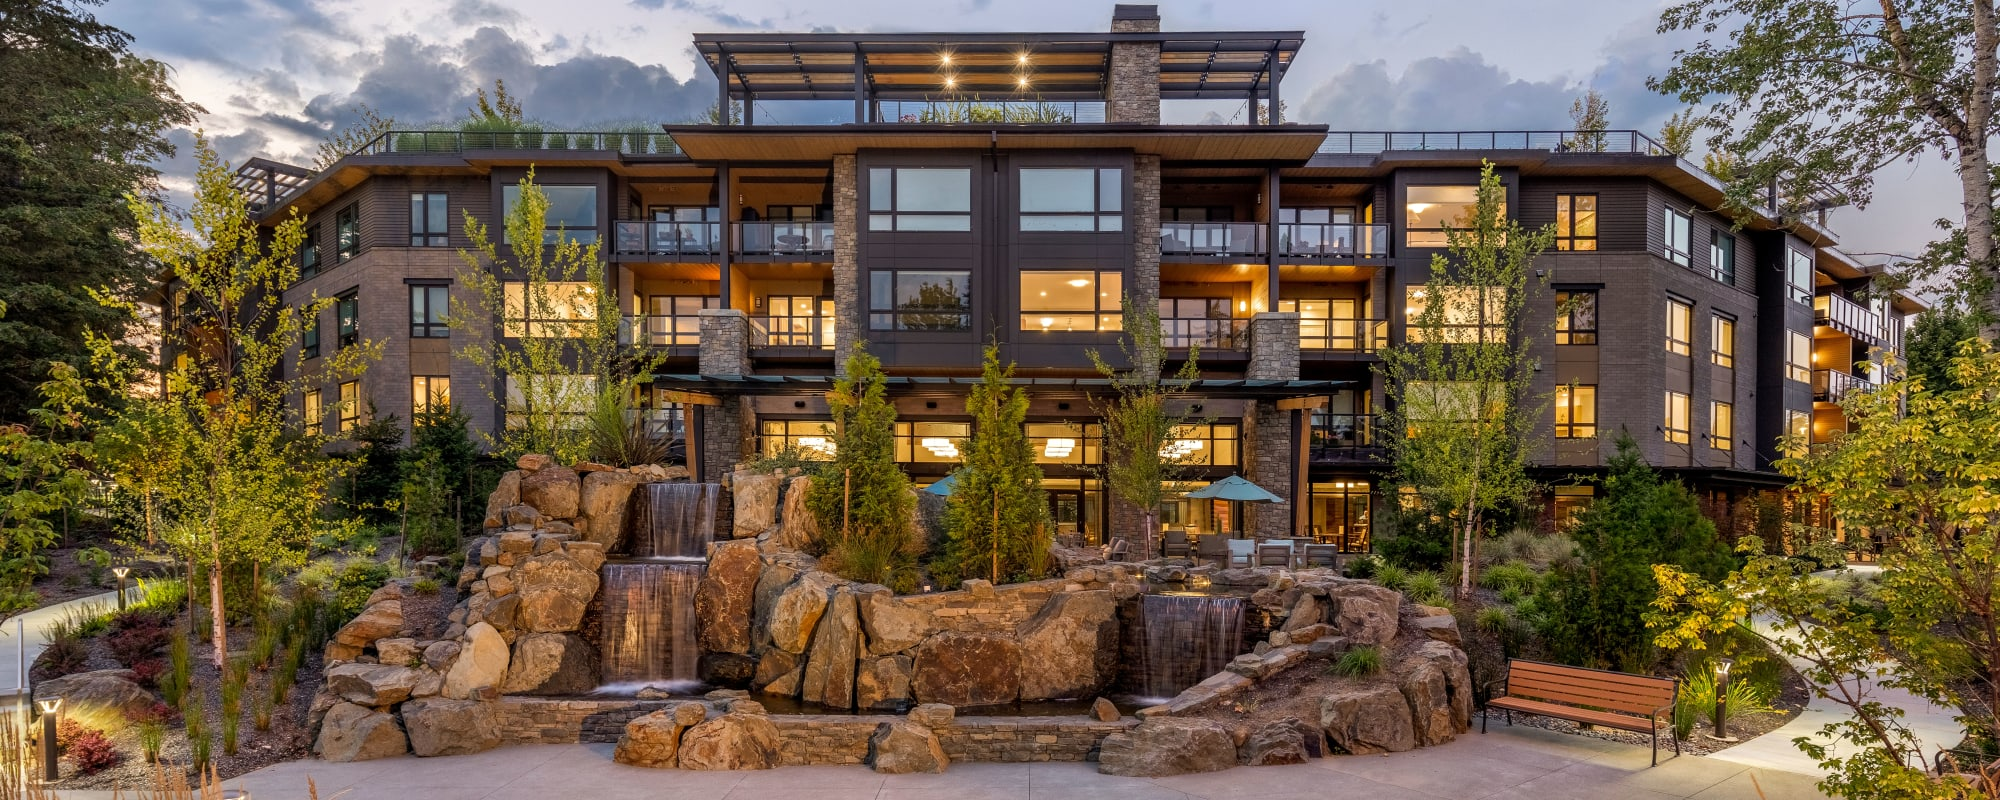 Independent living services at The Springs at Lake Oswego in Lake Oswego, Oregon